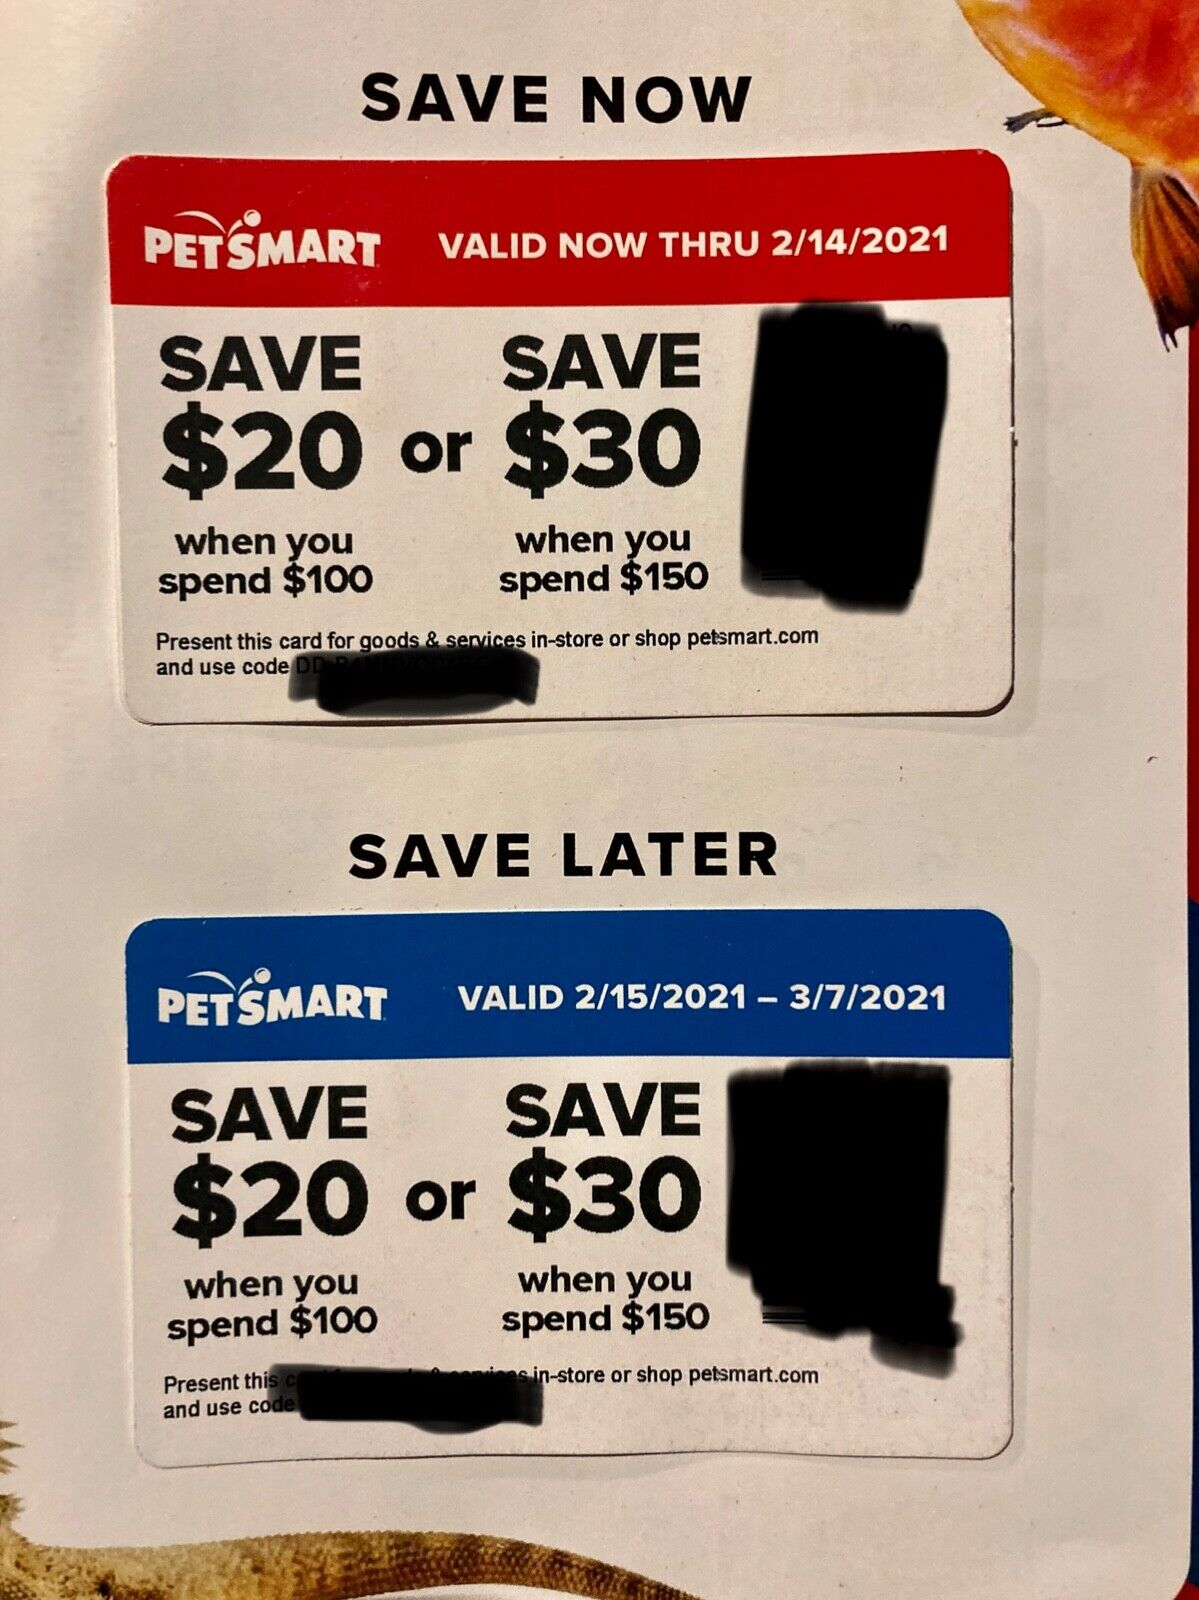 PetSmart Coupons 2 Save 20 When You Spend 100 Save 30 When You Spend 150 - $5.00